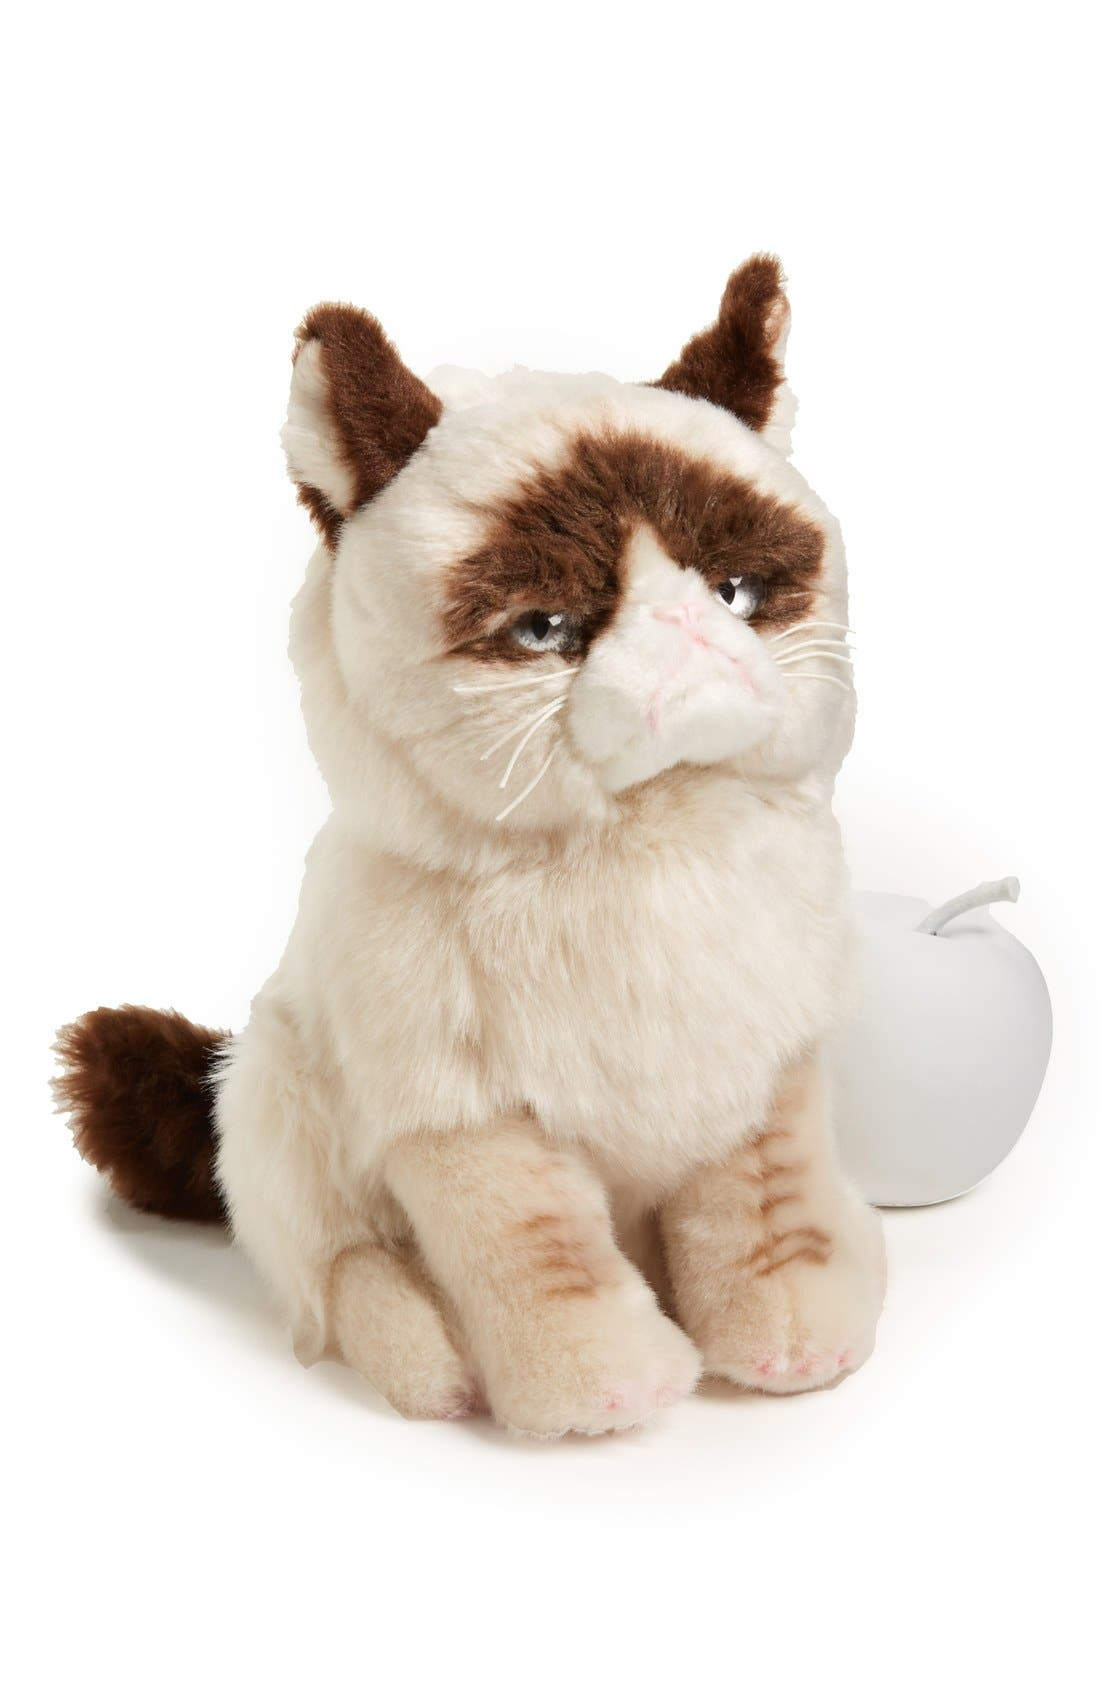 Alternate Image 1 Selected - Gund 'Grumpy Cat' Stuffed Animal